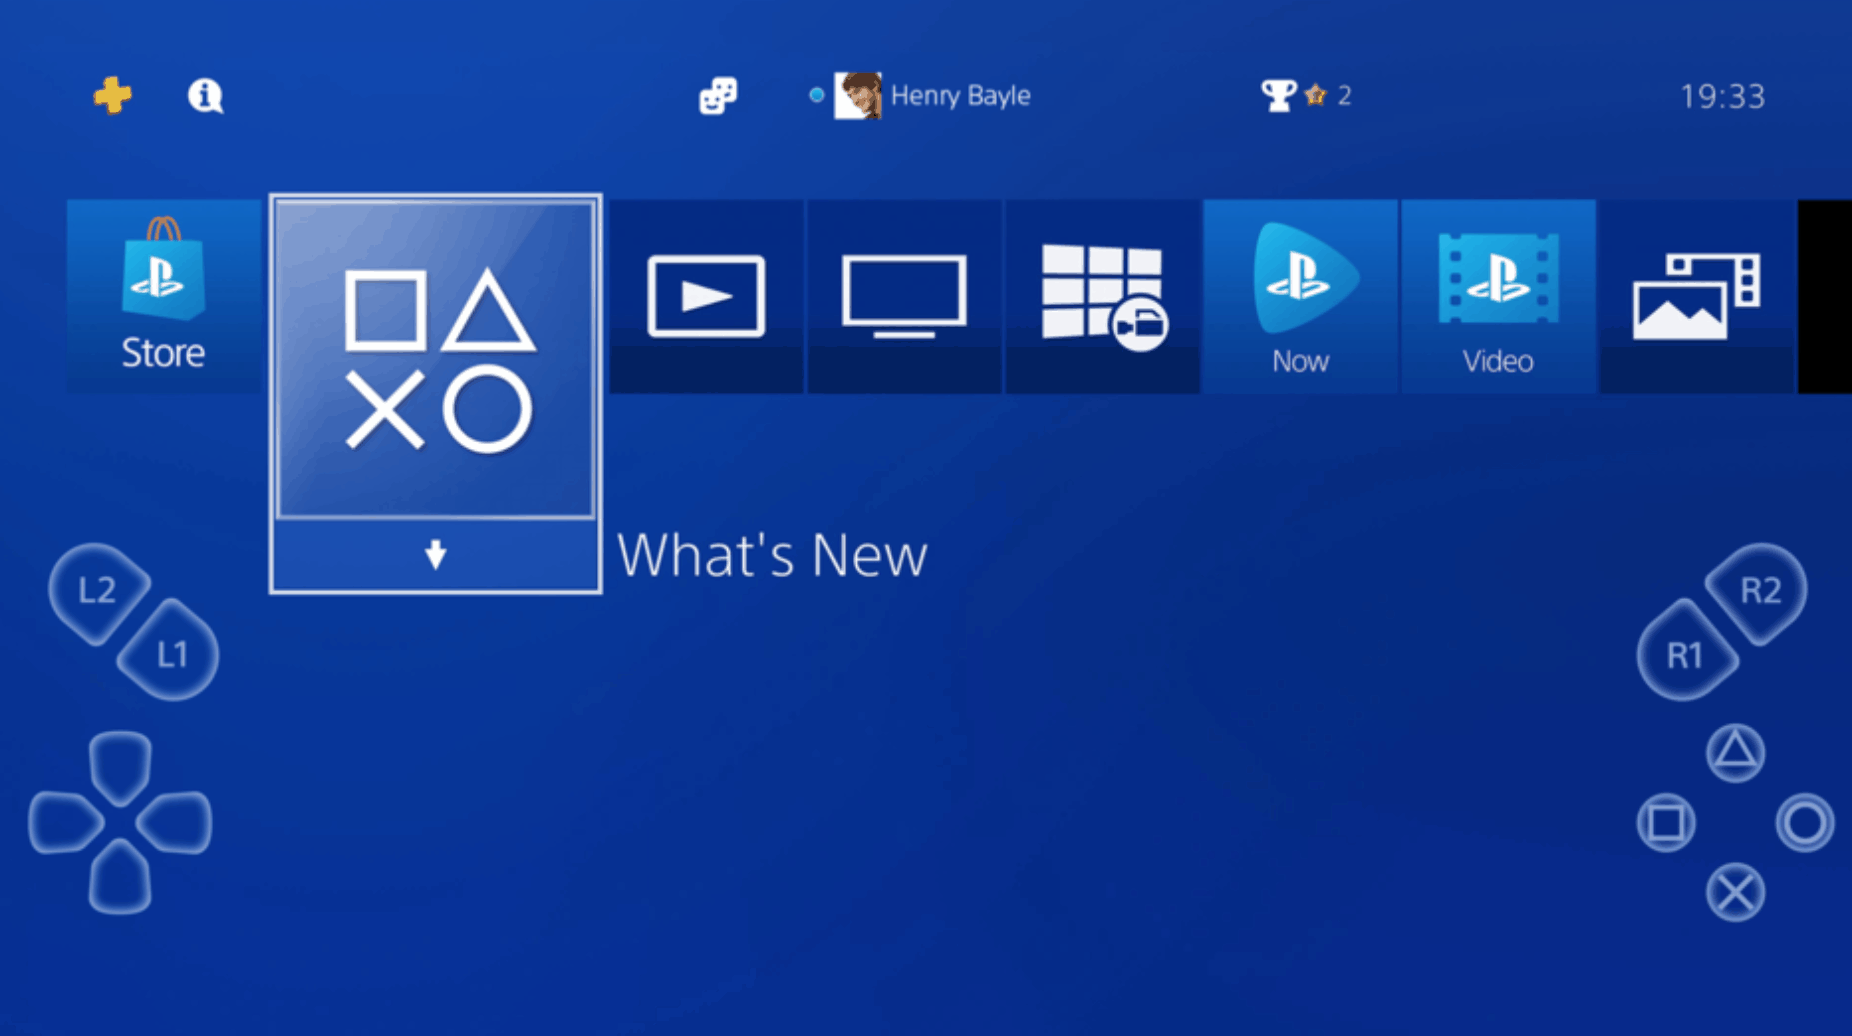 PlayStation 4 Remote Play Arrives On iOS Devices With Firmware Update 6.50